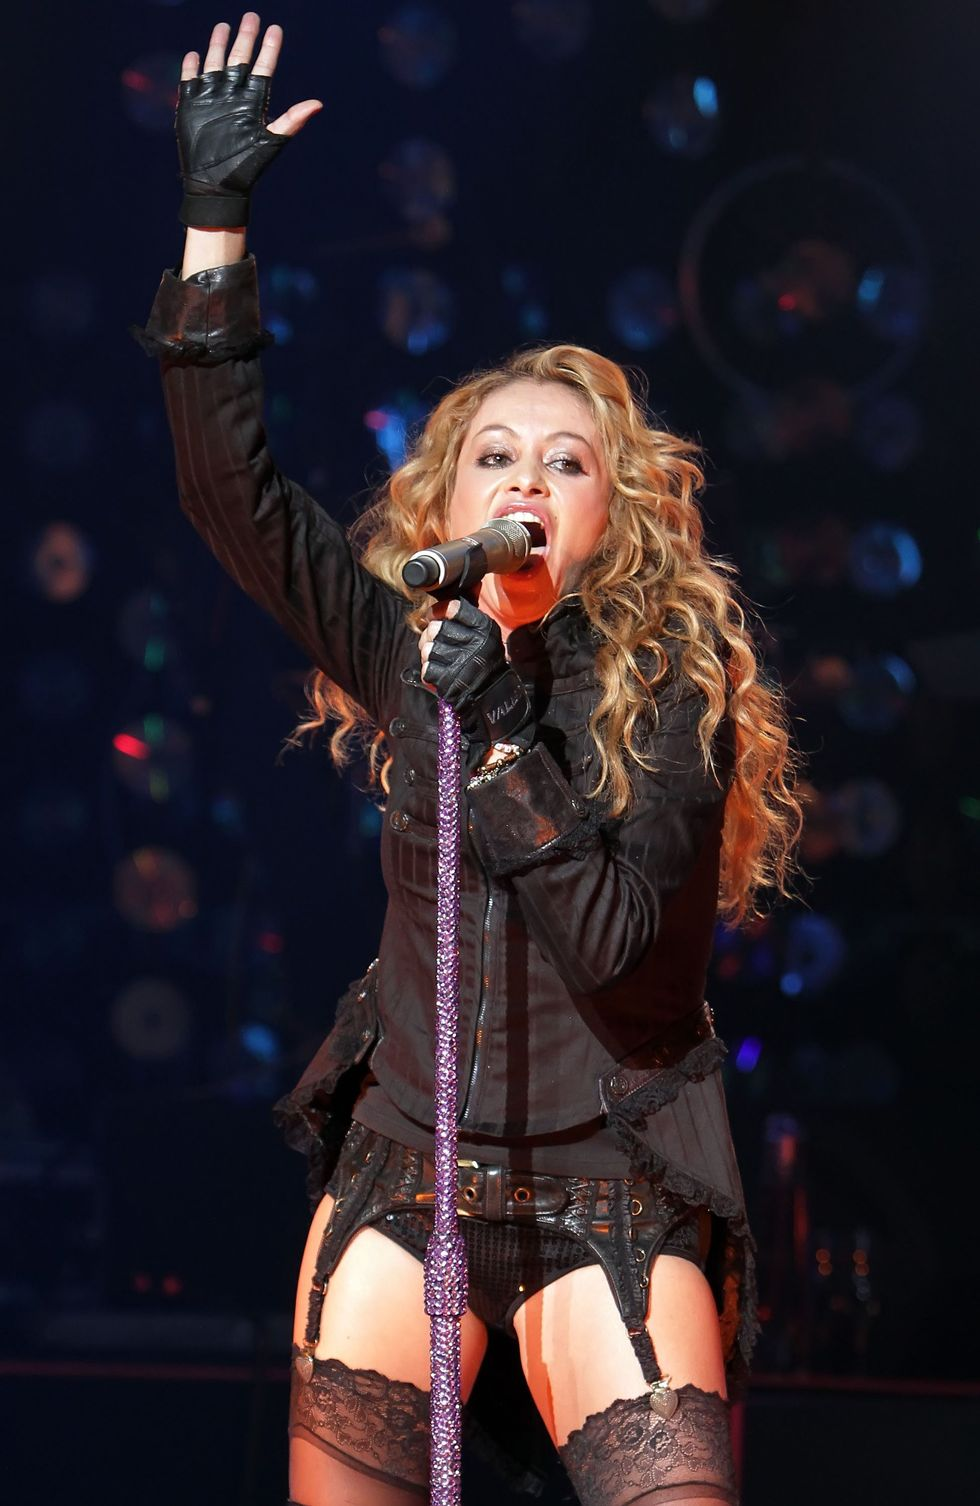 paulina-rubio-gran-city-pop-tour-concert-in-miami-15